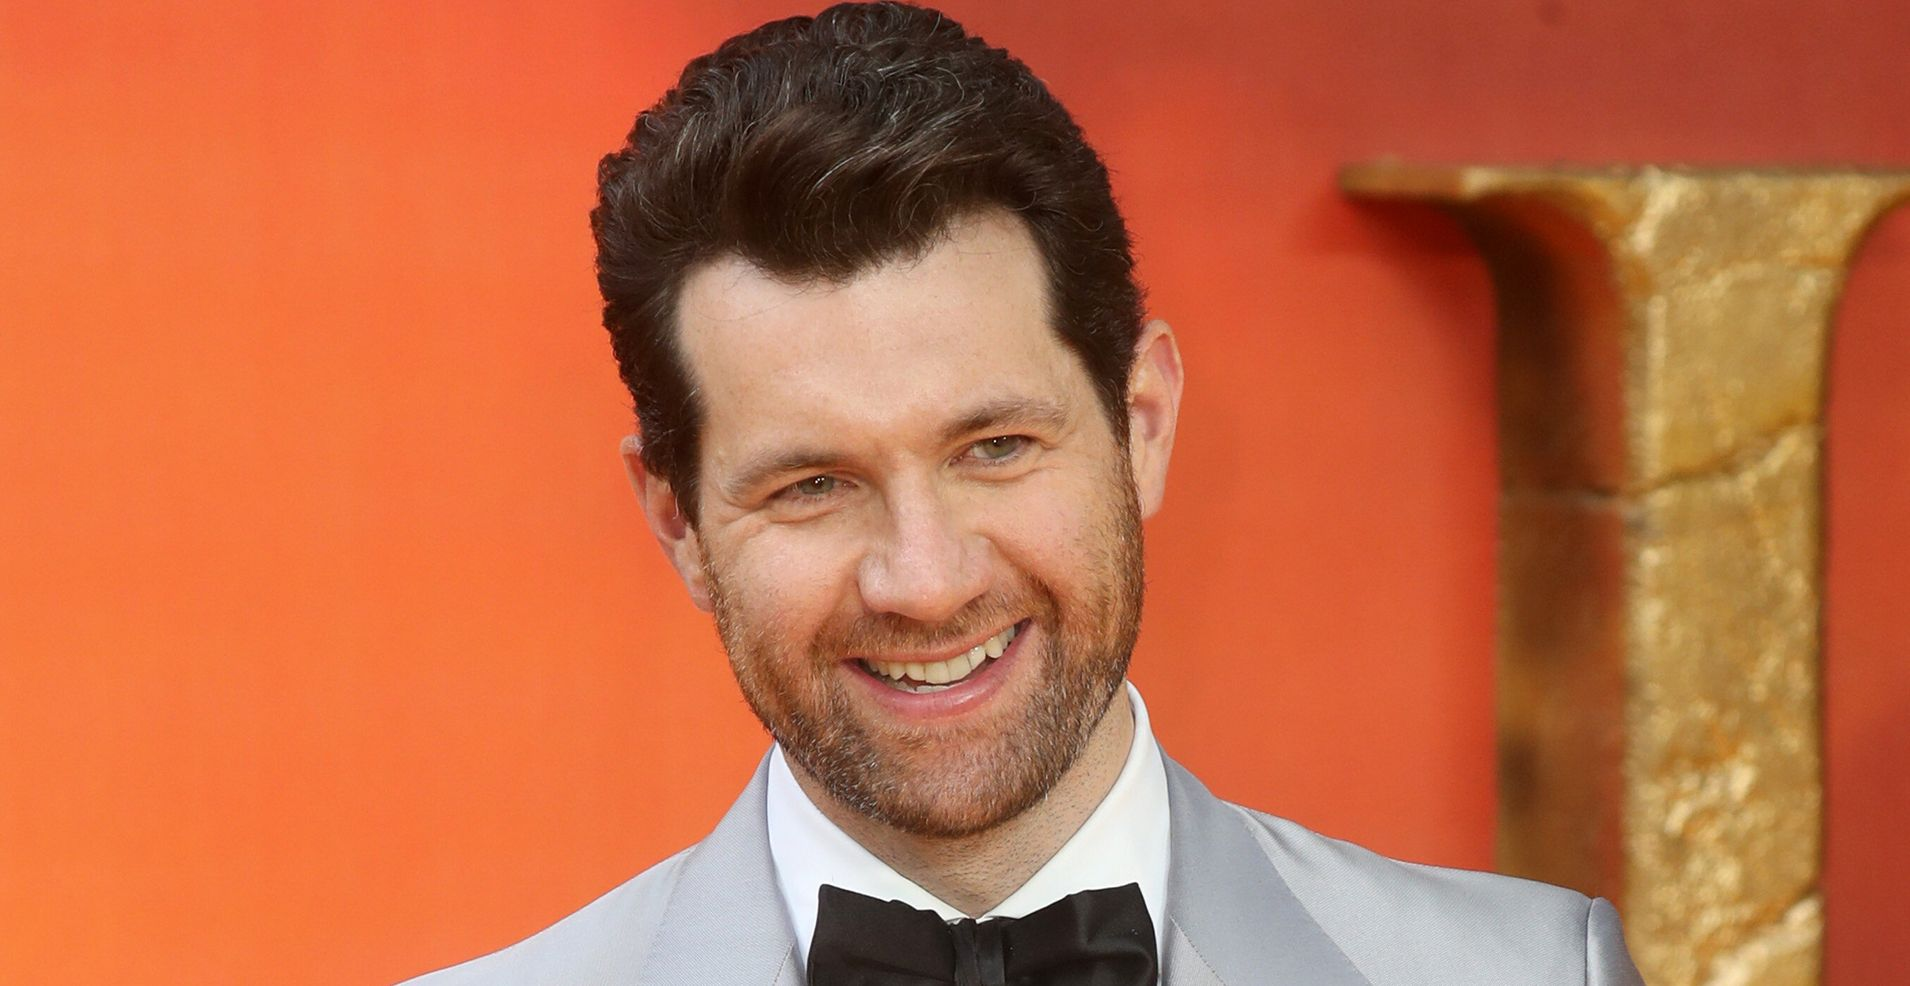 Westlake Legal Group 5d2ca1393b00003900dac6ea Billy Eichner Wants To See LGBTQ People 'That Are Not A Mystery' In Family Films